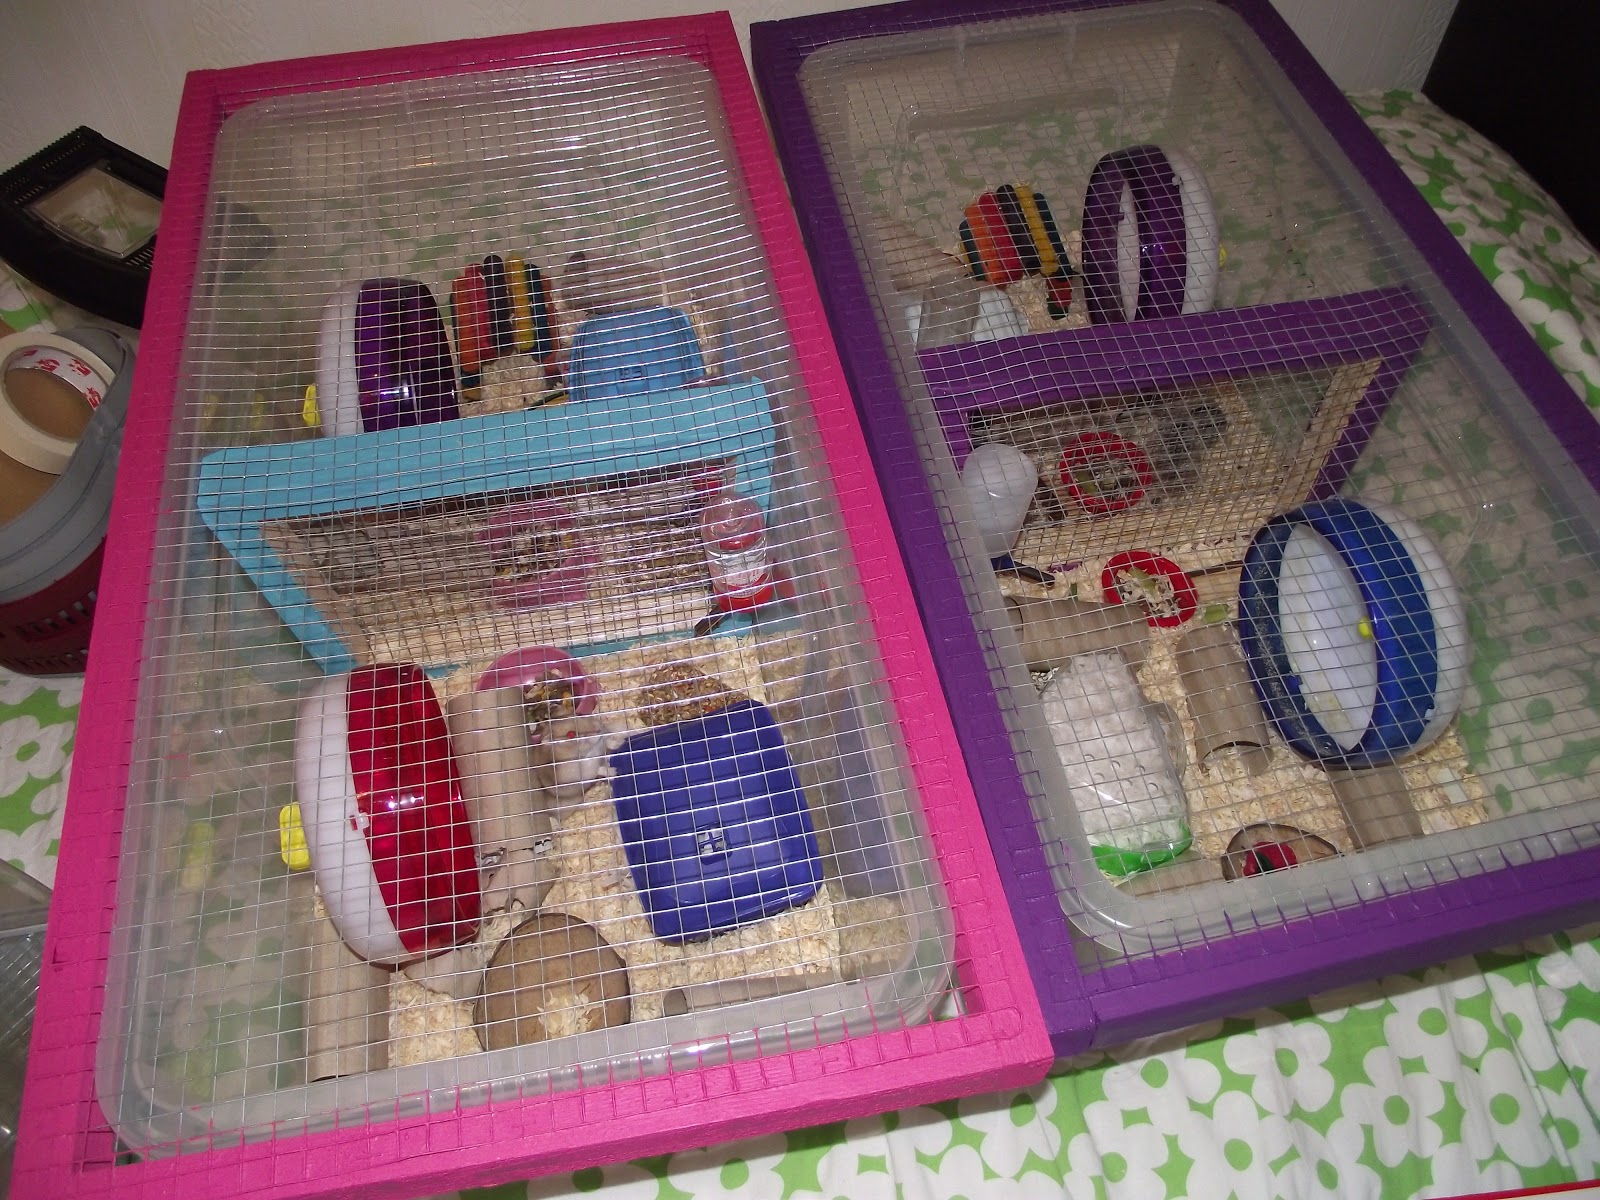 Homemade Bin Cages & The Whiskerteers: Homemade Bin Cages